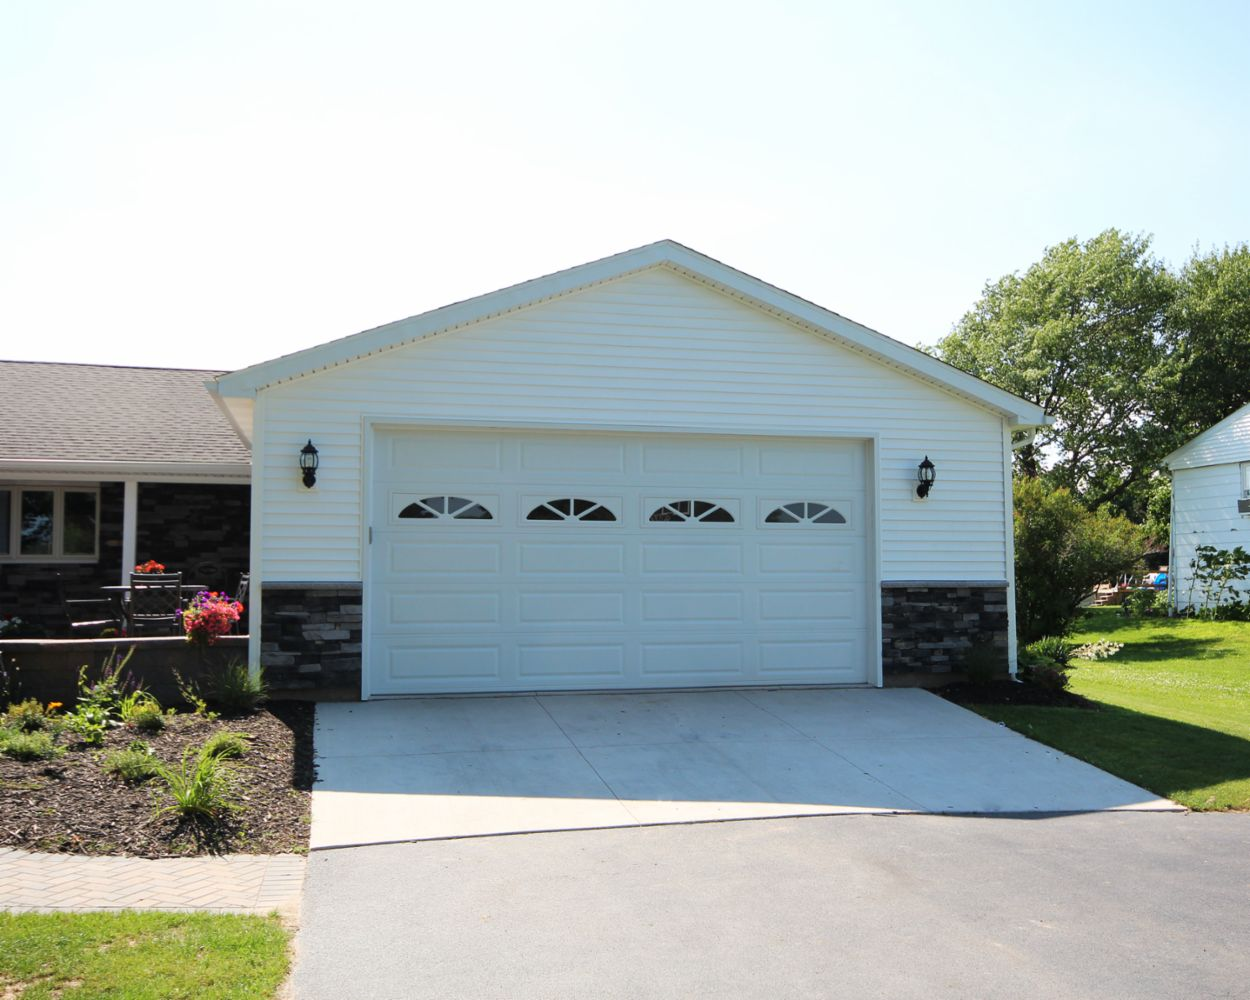 Charming Garage Door Repair Sun City AZ Has Been Rated With 22 Experience Points  Based On Fixru0027s Rating System.